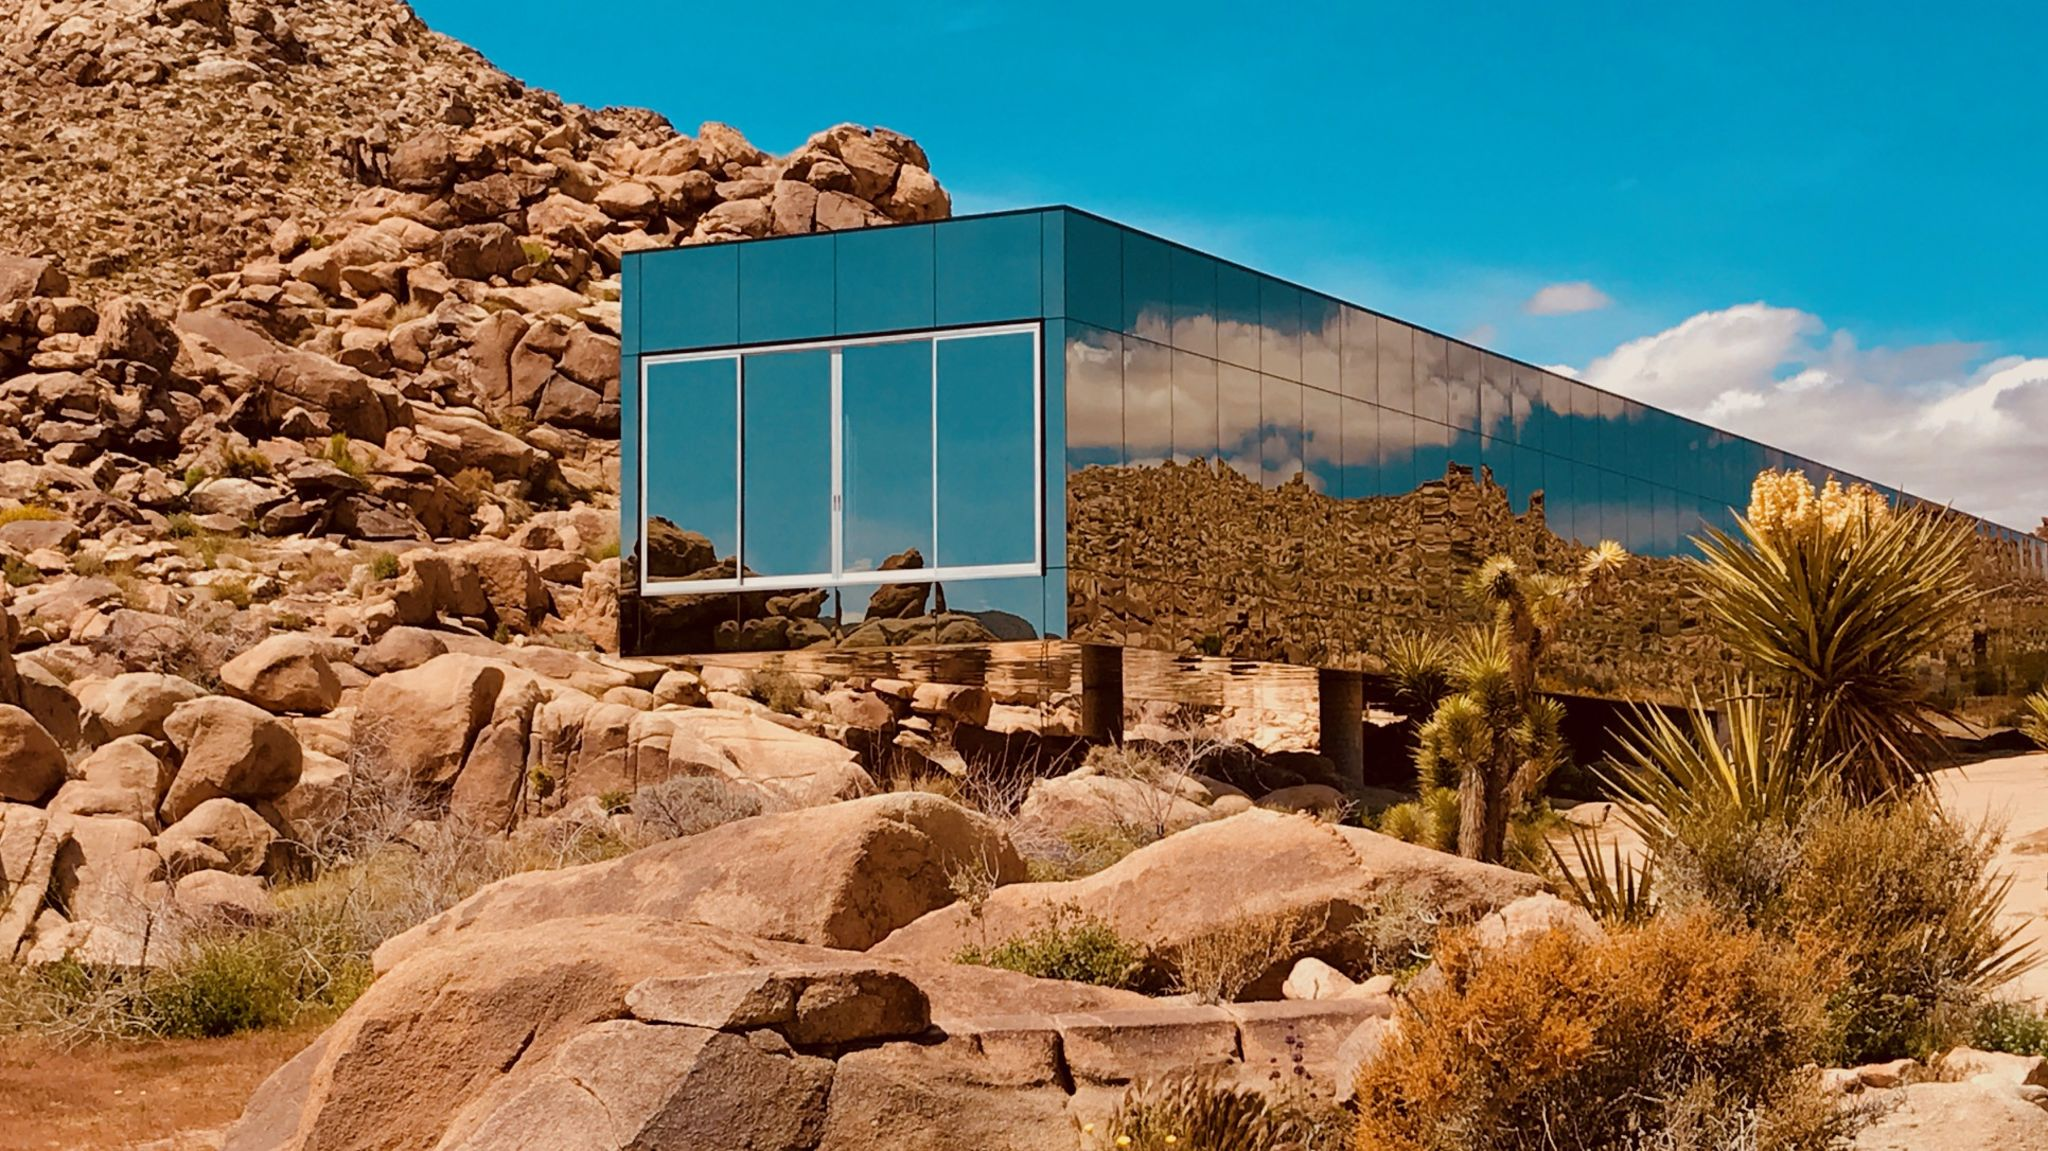 Invisible House mirrored nestled in 90 acres of rocks like another planet sci fi beyond, Joshua Tree, CA | Production | Peerspace